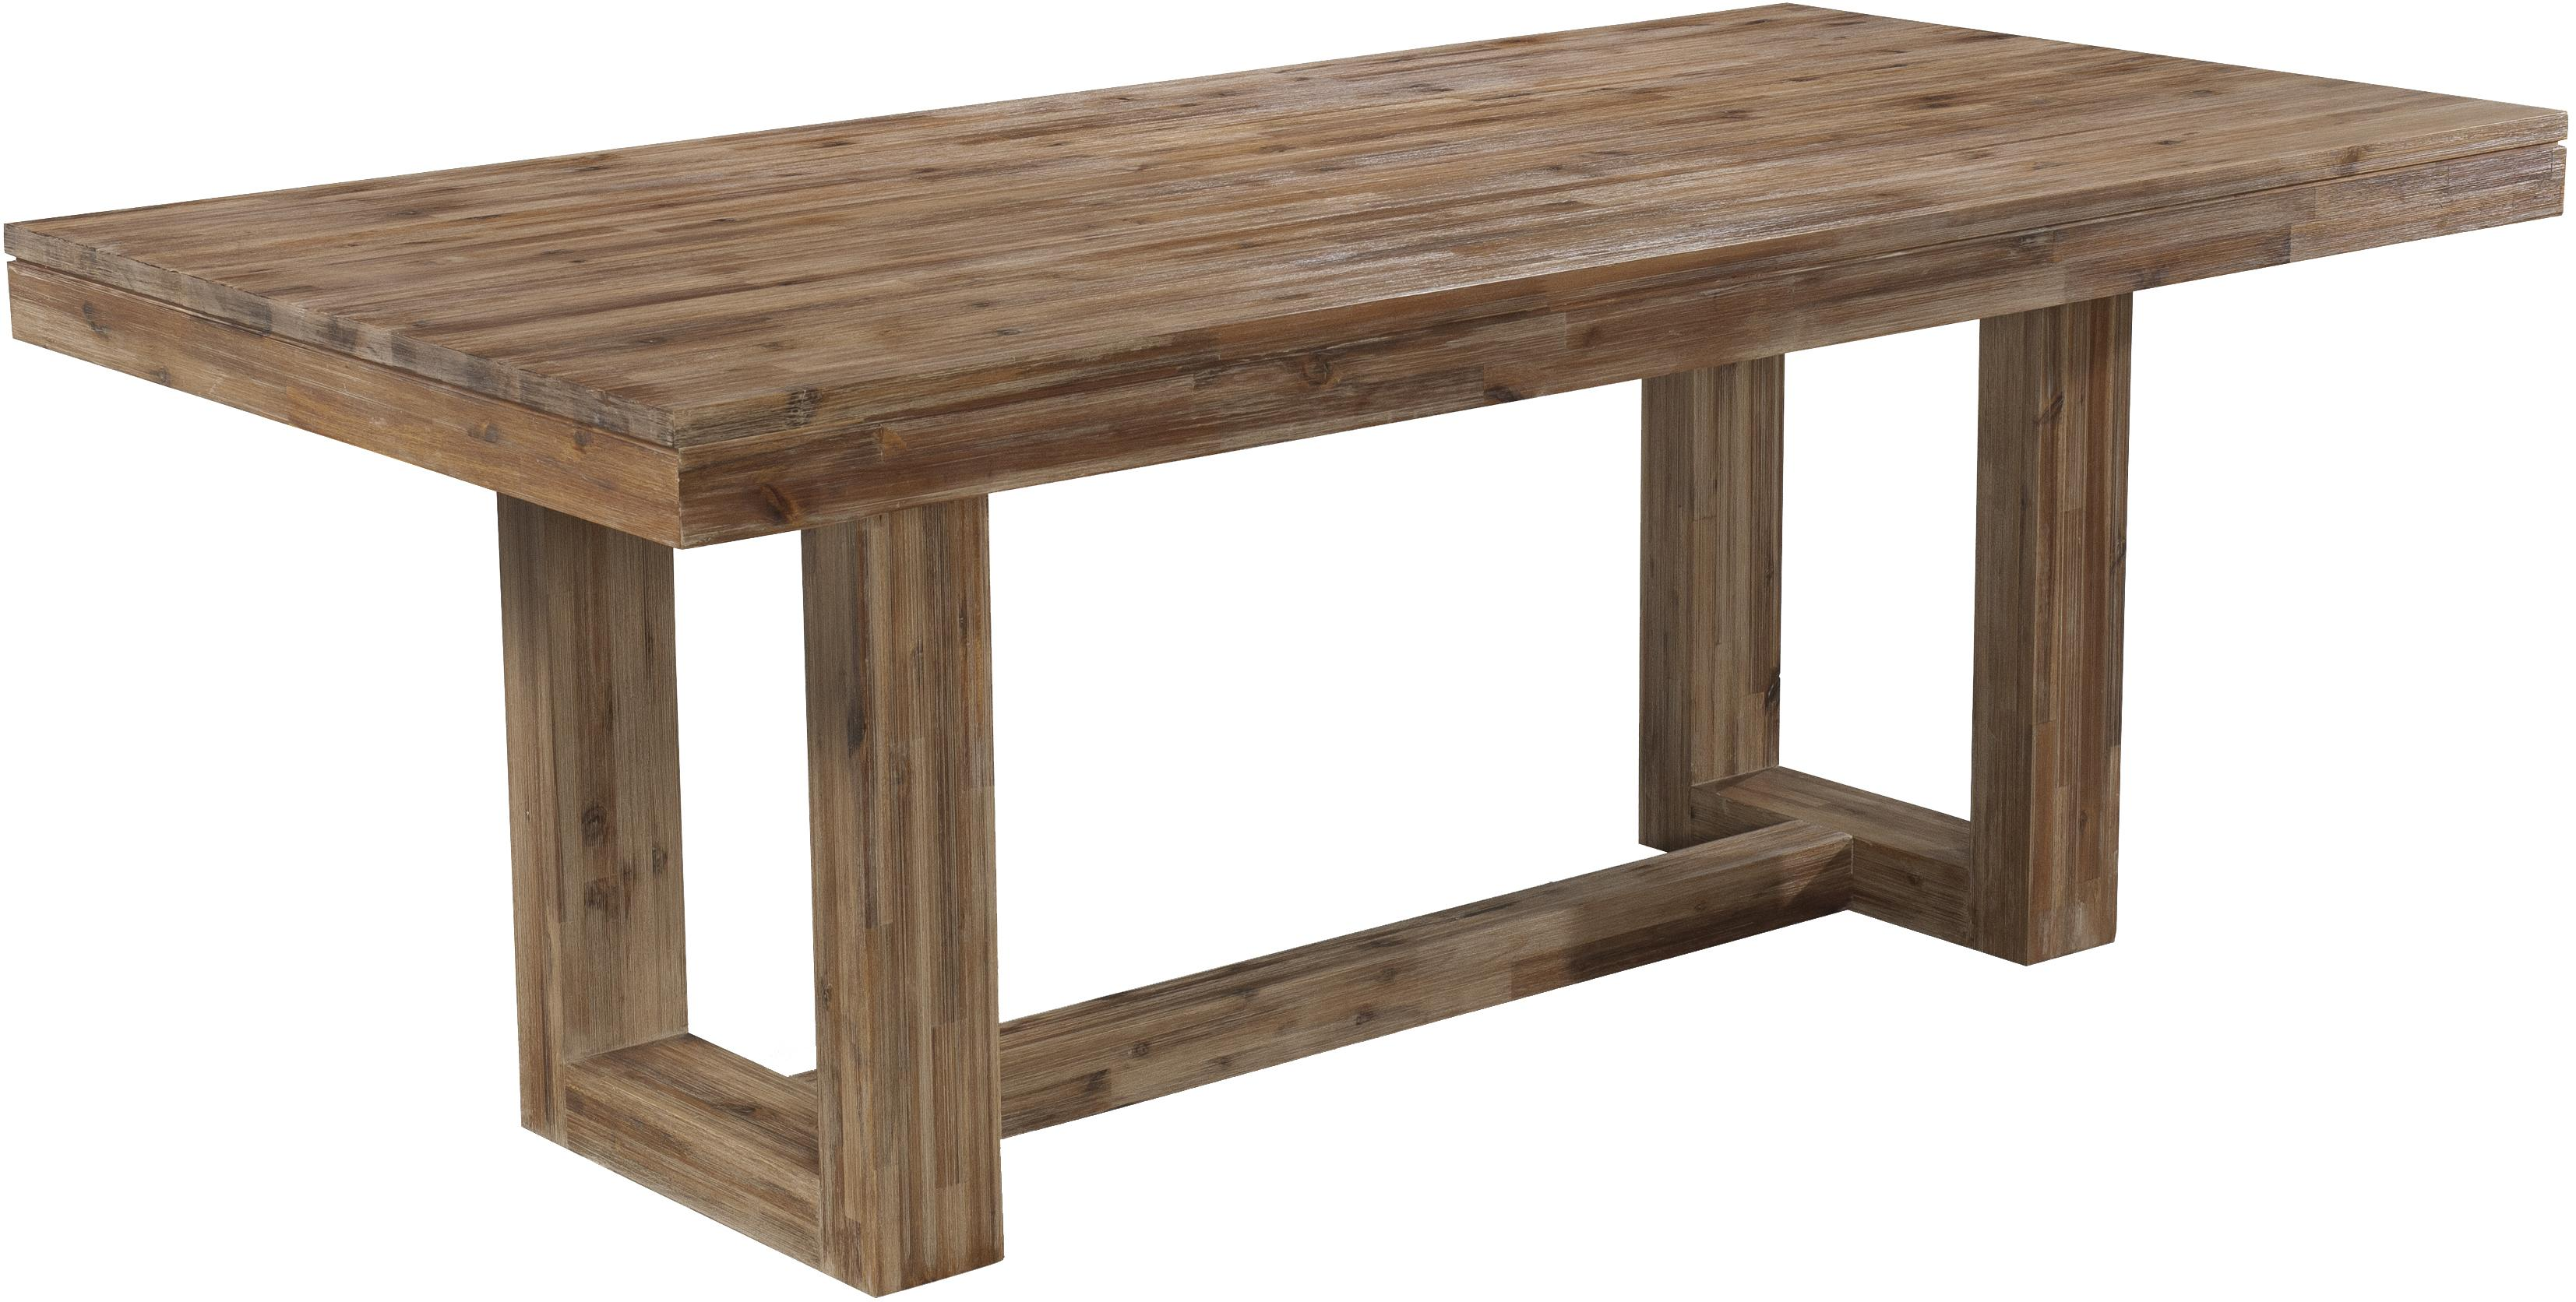 Charmant Cresent Fine Furniture Waverly Modern Rectangular Dining Table With Rustic  Trestle Base   AHFA   Kitchen Table Dealer Locator